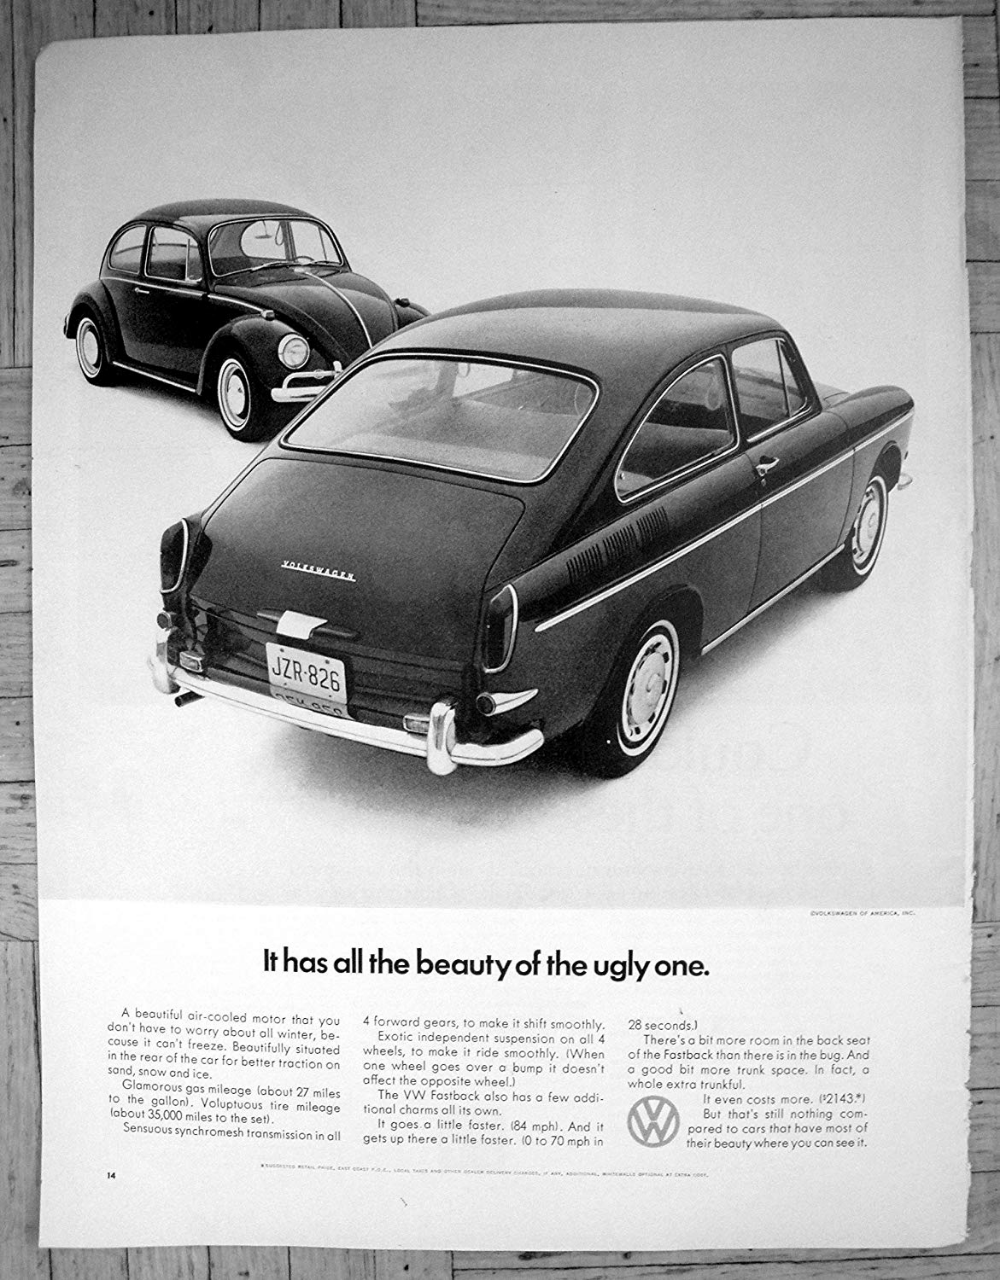 Amazon Com 1966 Vw Fastback Bug Comparison Cost 2 143 Original 13 5 10 5 Magazine Ad Classic Ads Vintage Volkswagen Car Advertising Vw Volkswagen